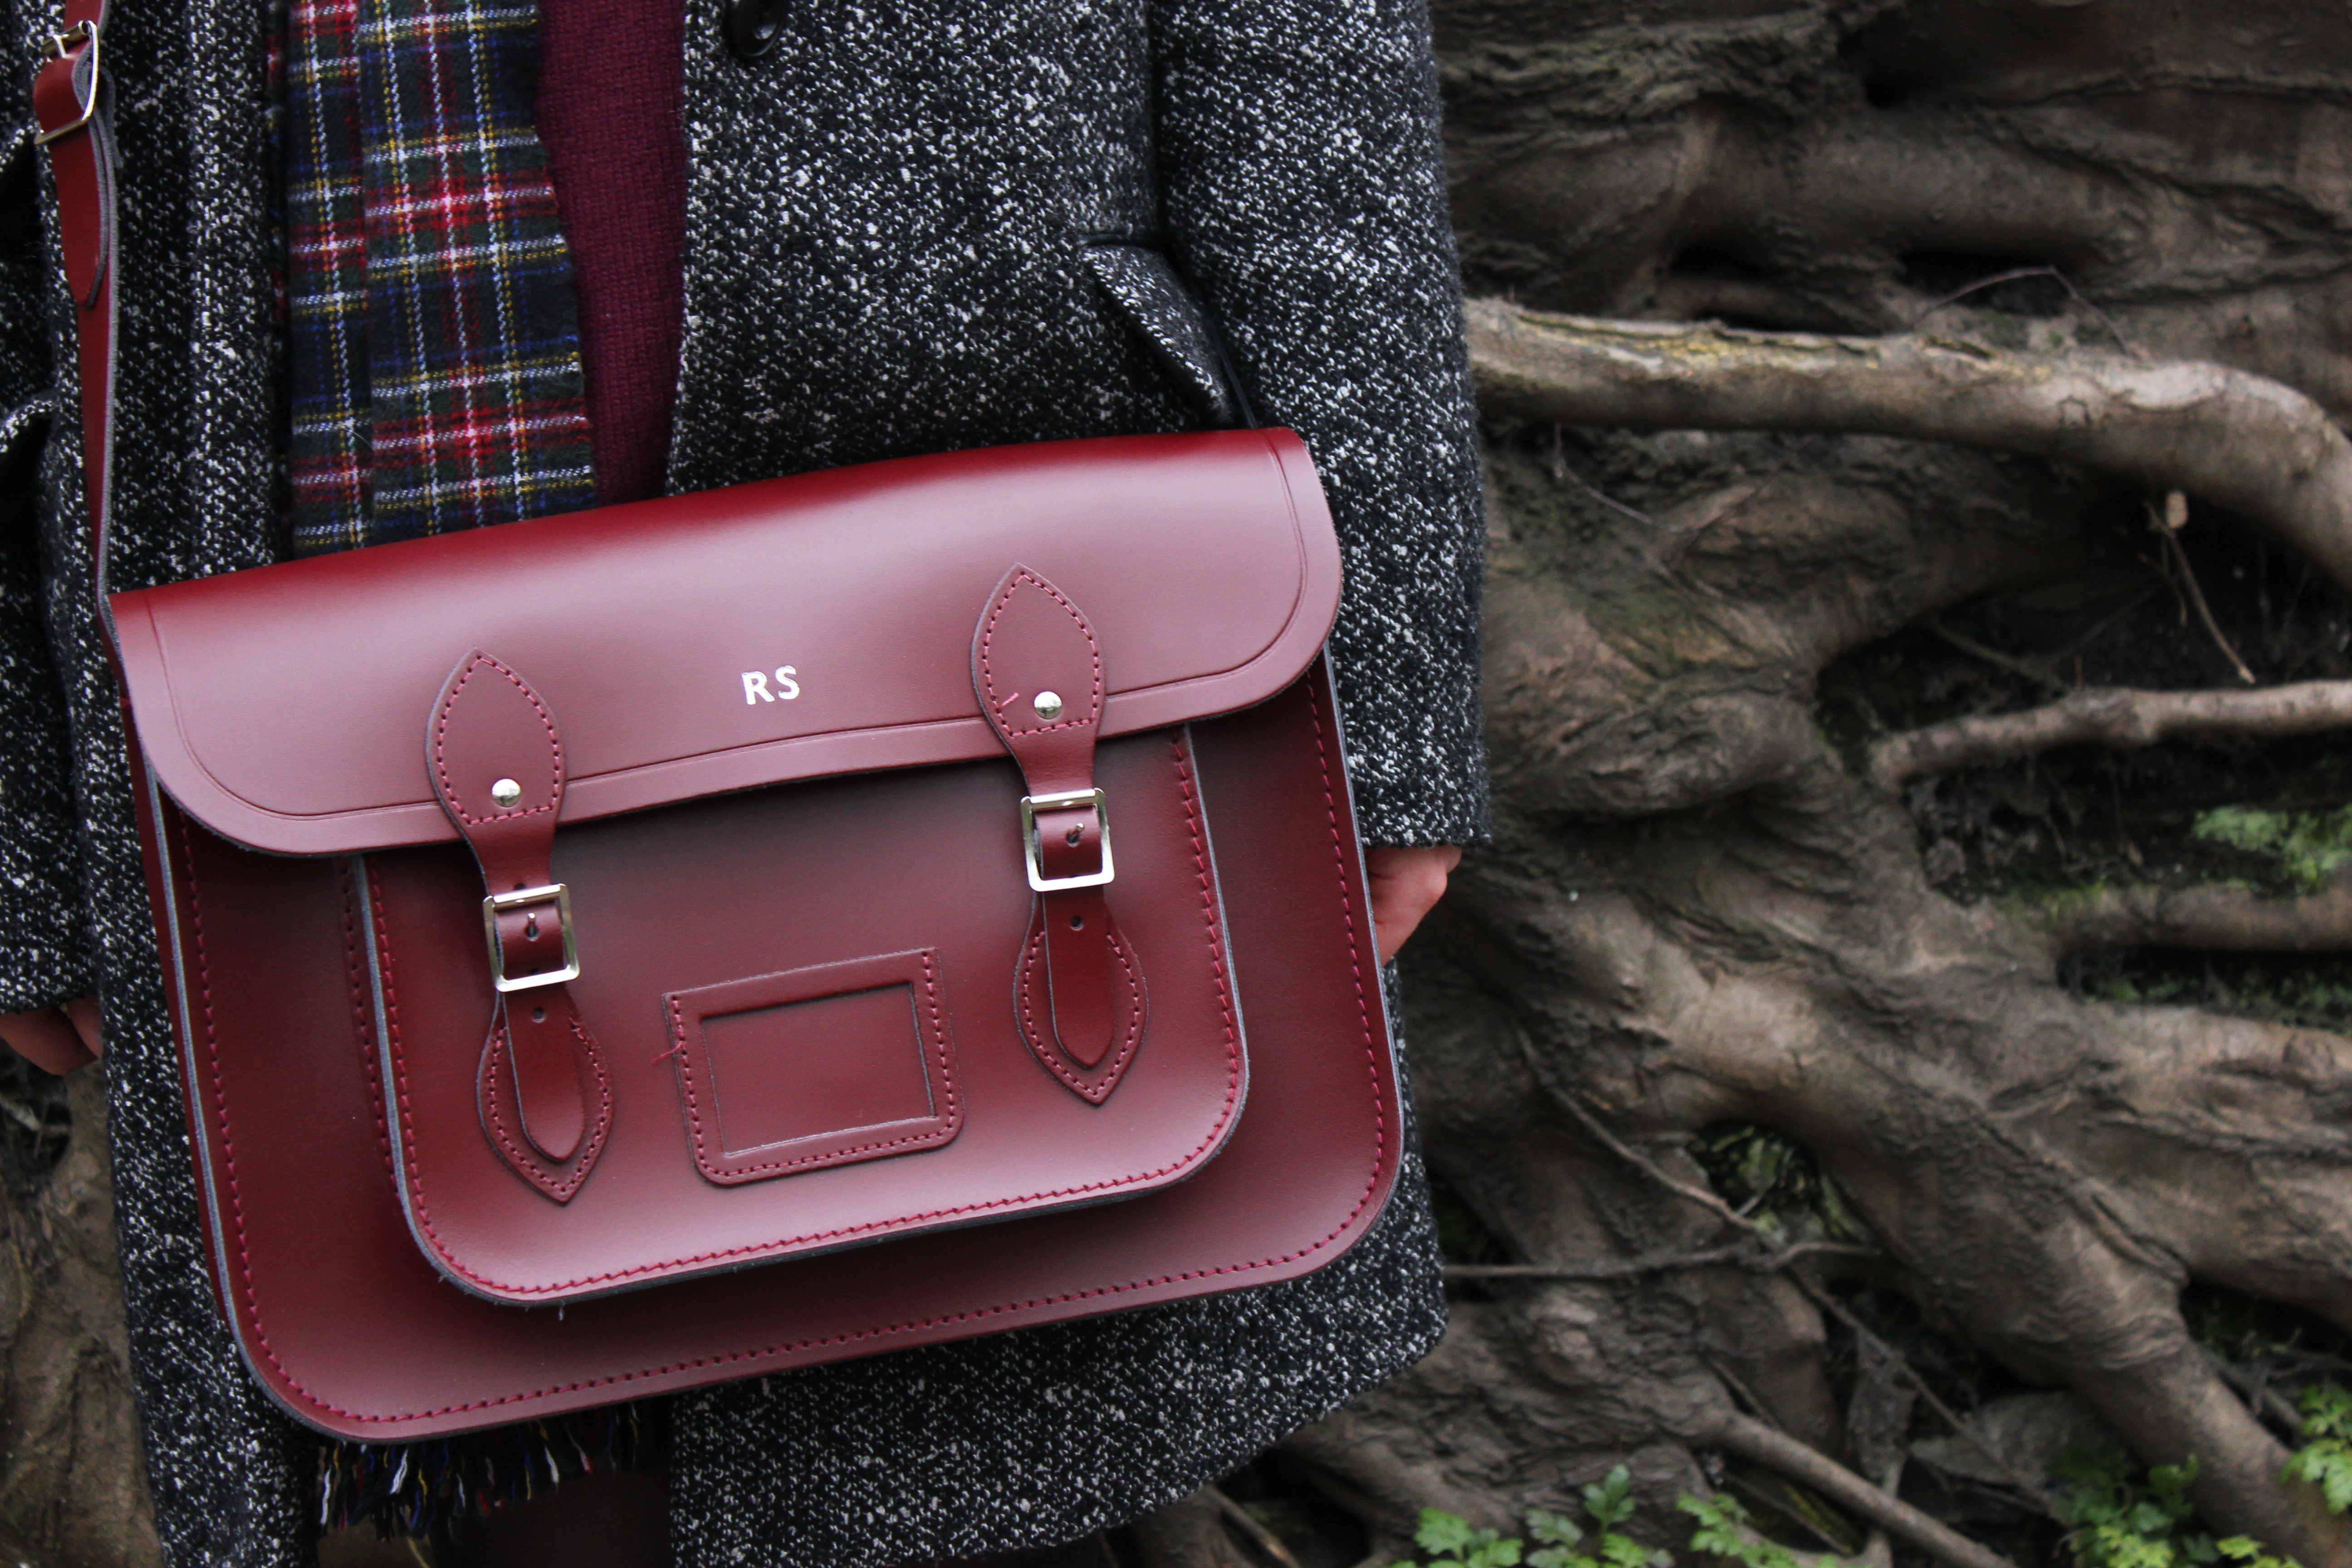 356a0e93c0 An Interview with the Cambridge Satchel Company s Julie Deane ...